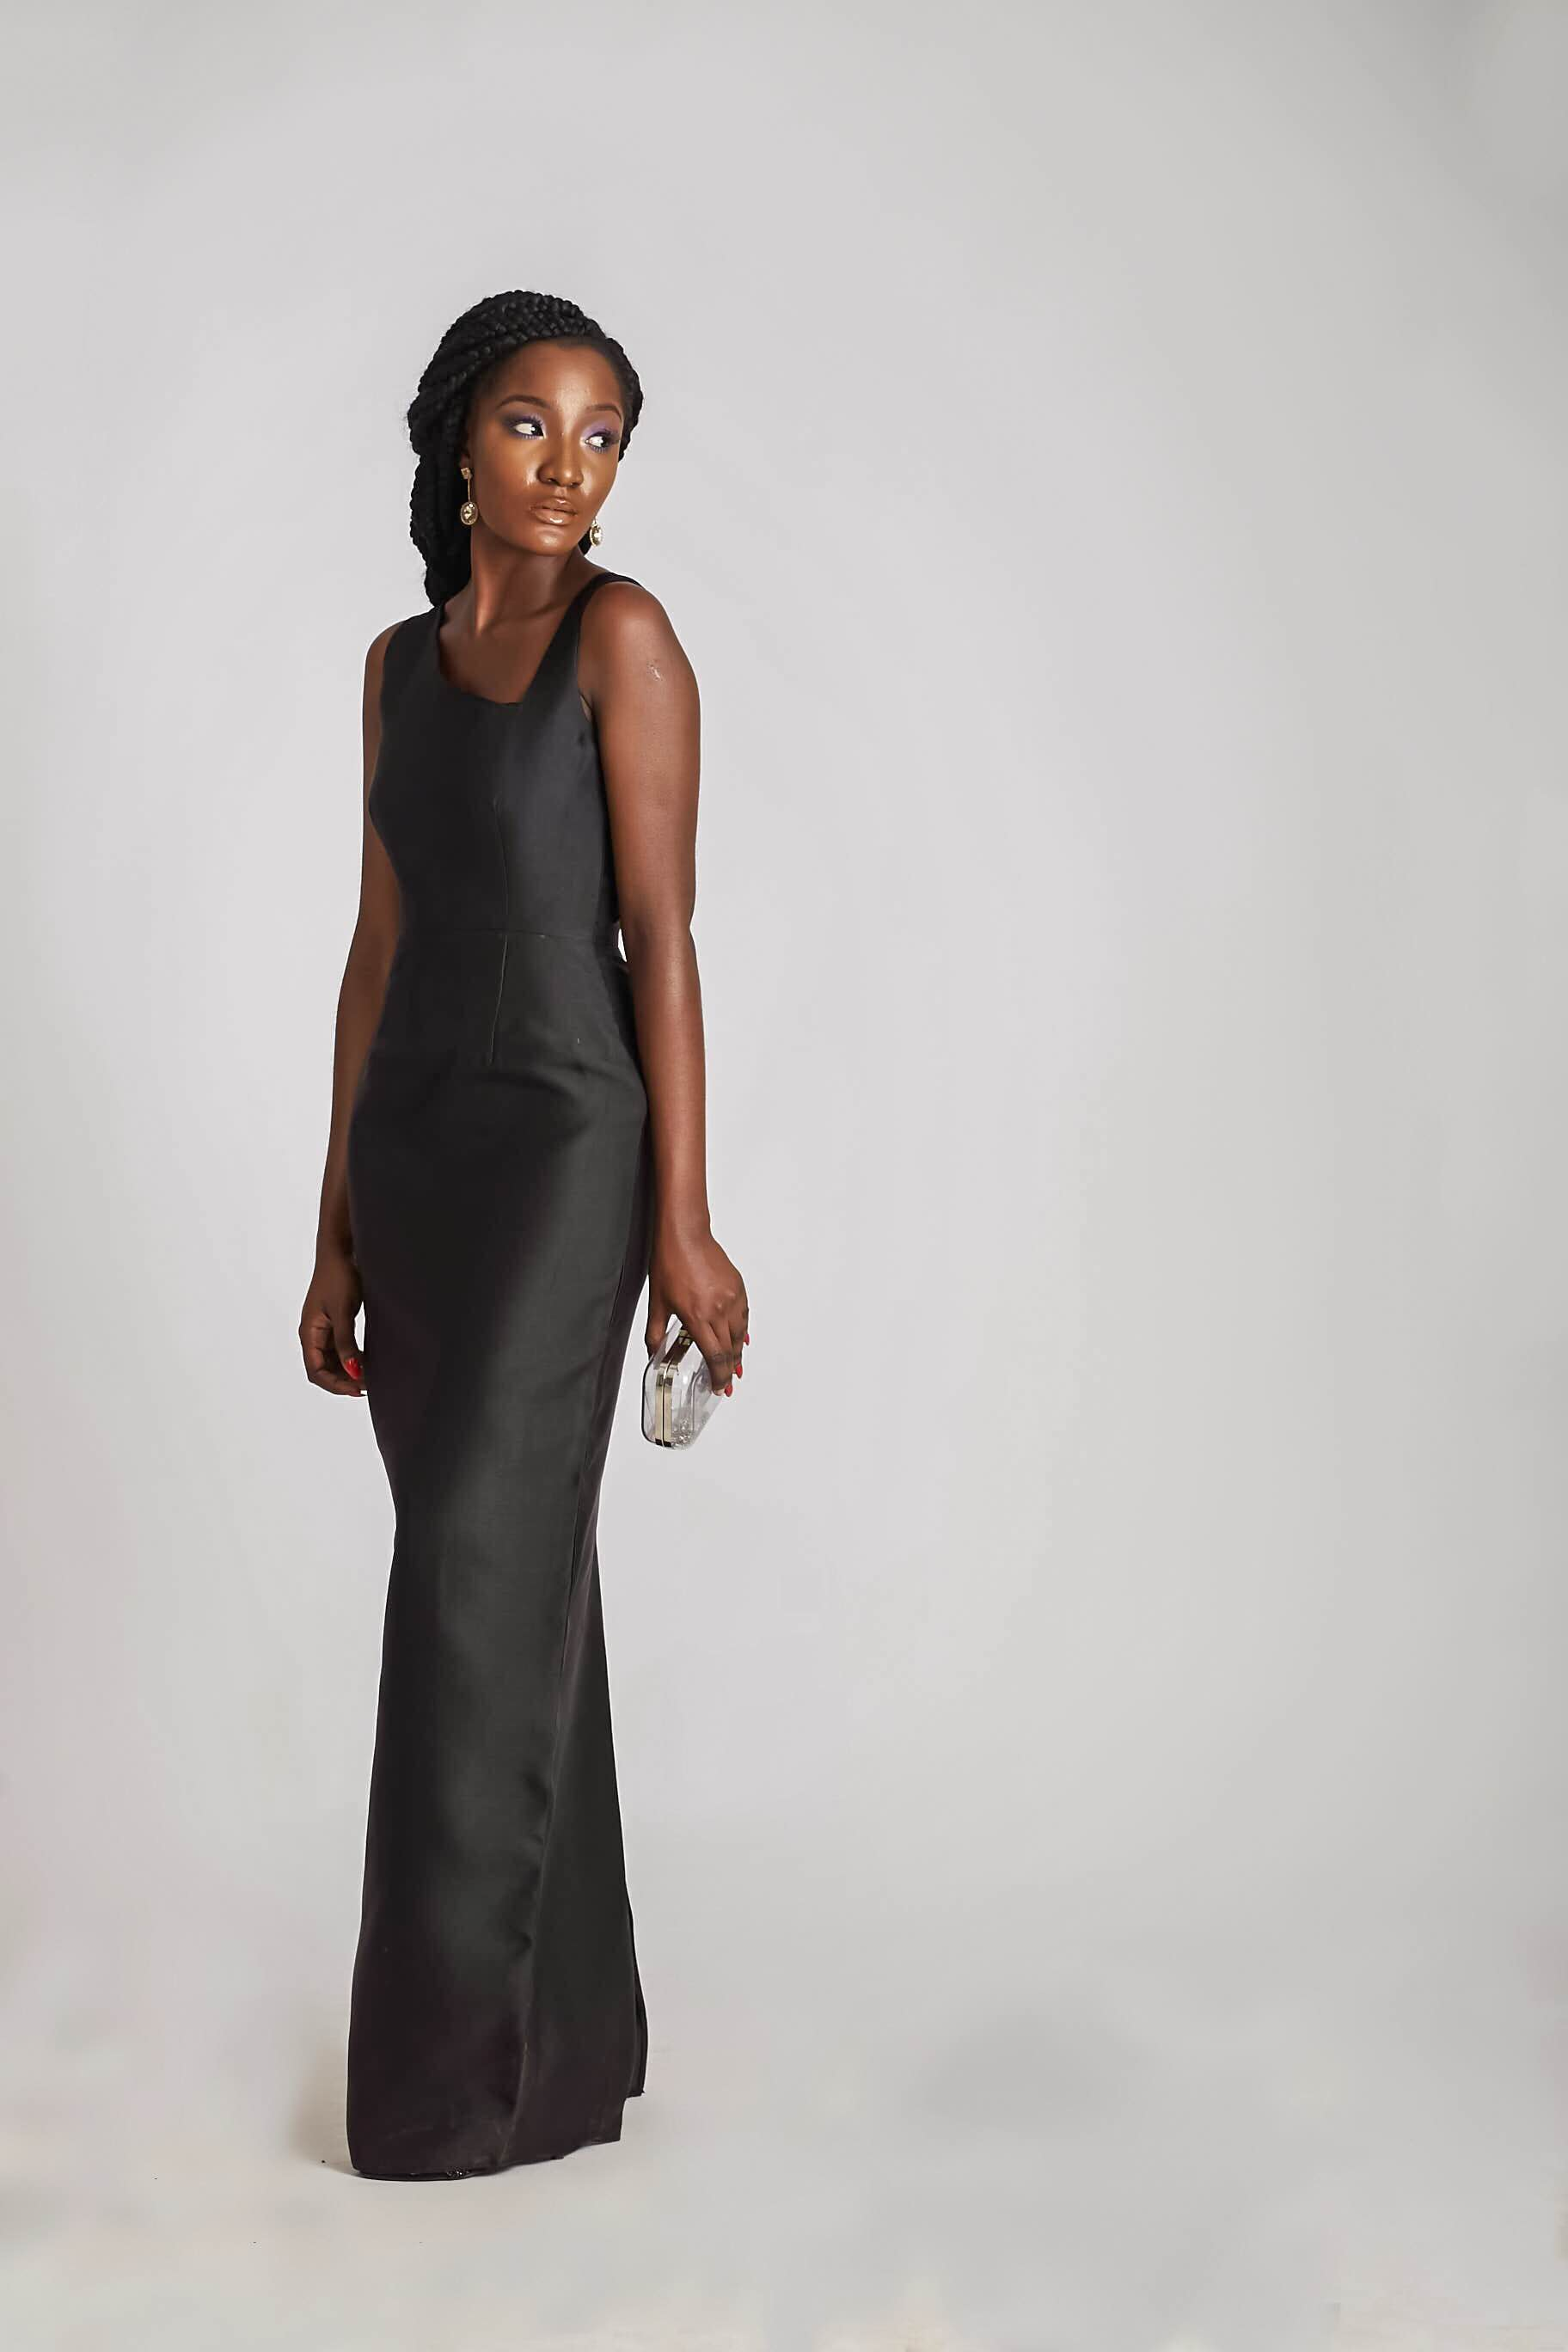 Imad Eduso - BN Style - Collection Lookbook - BellaNaija.com 020